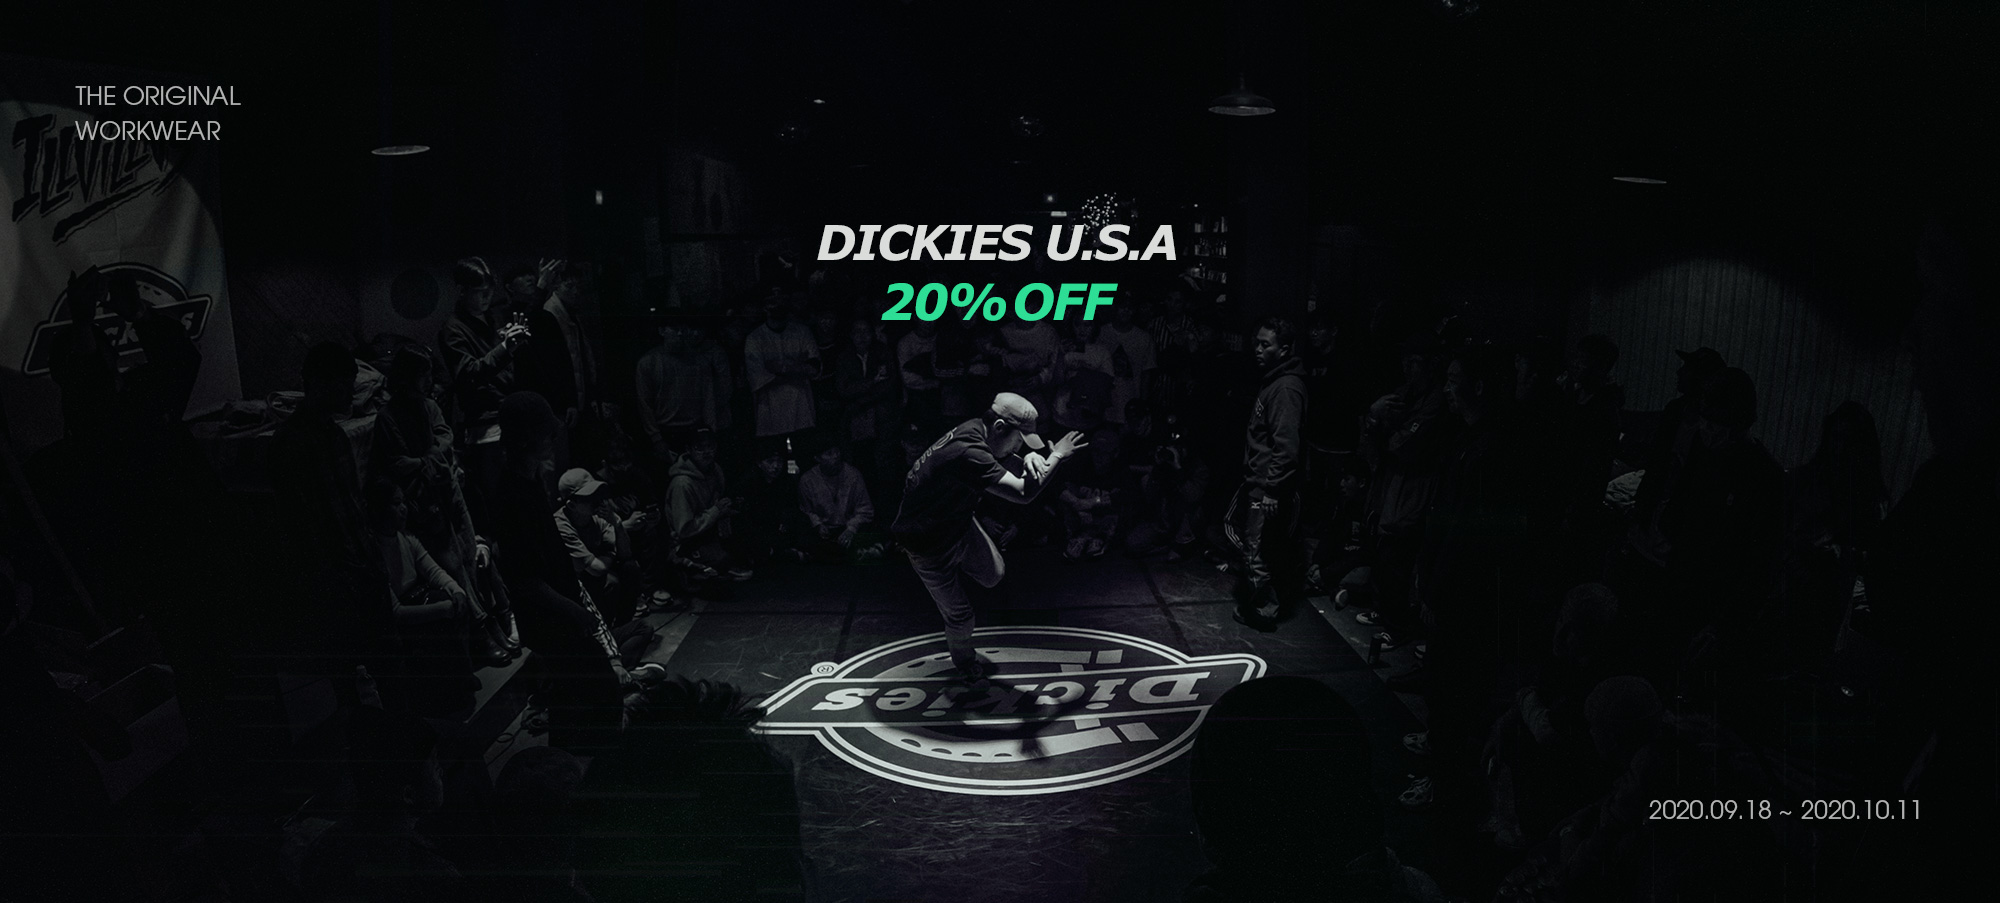 DICKIES U.S.A 20% OFF